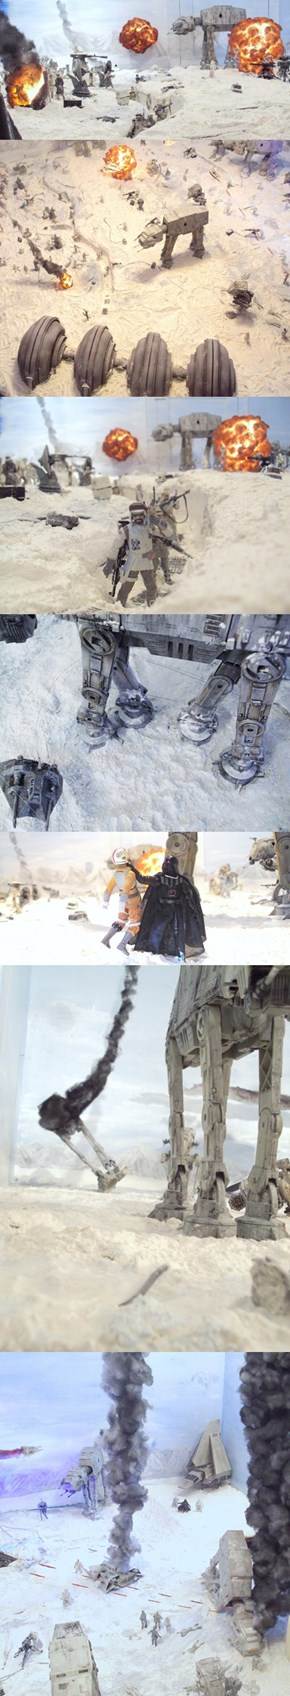 This Guy Built a Replica of the Battle of Hoth in his Living Room